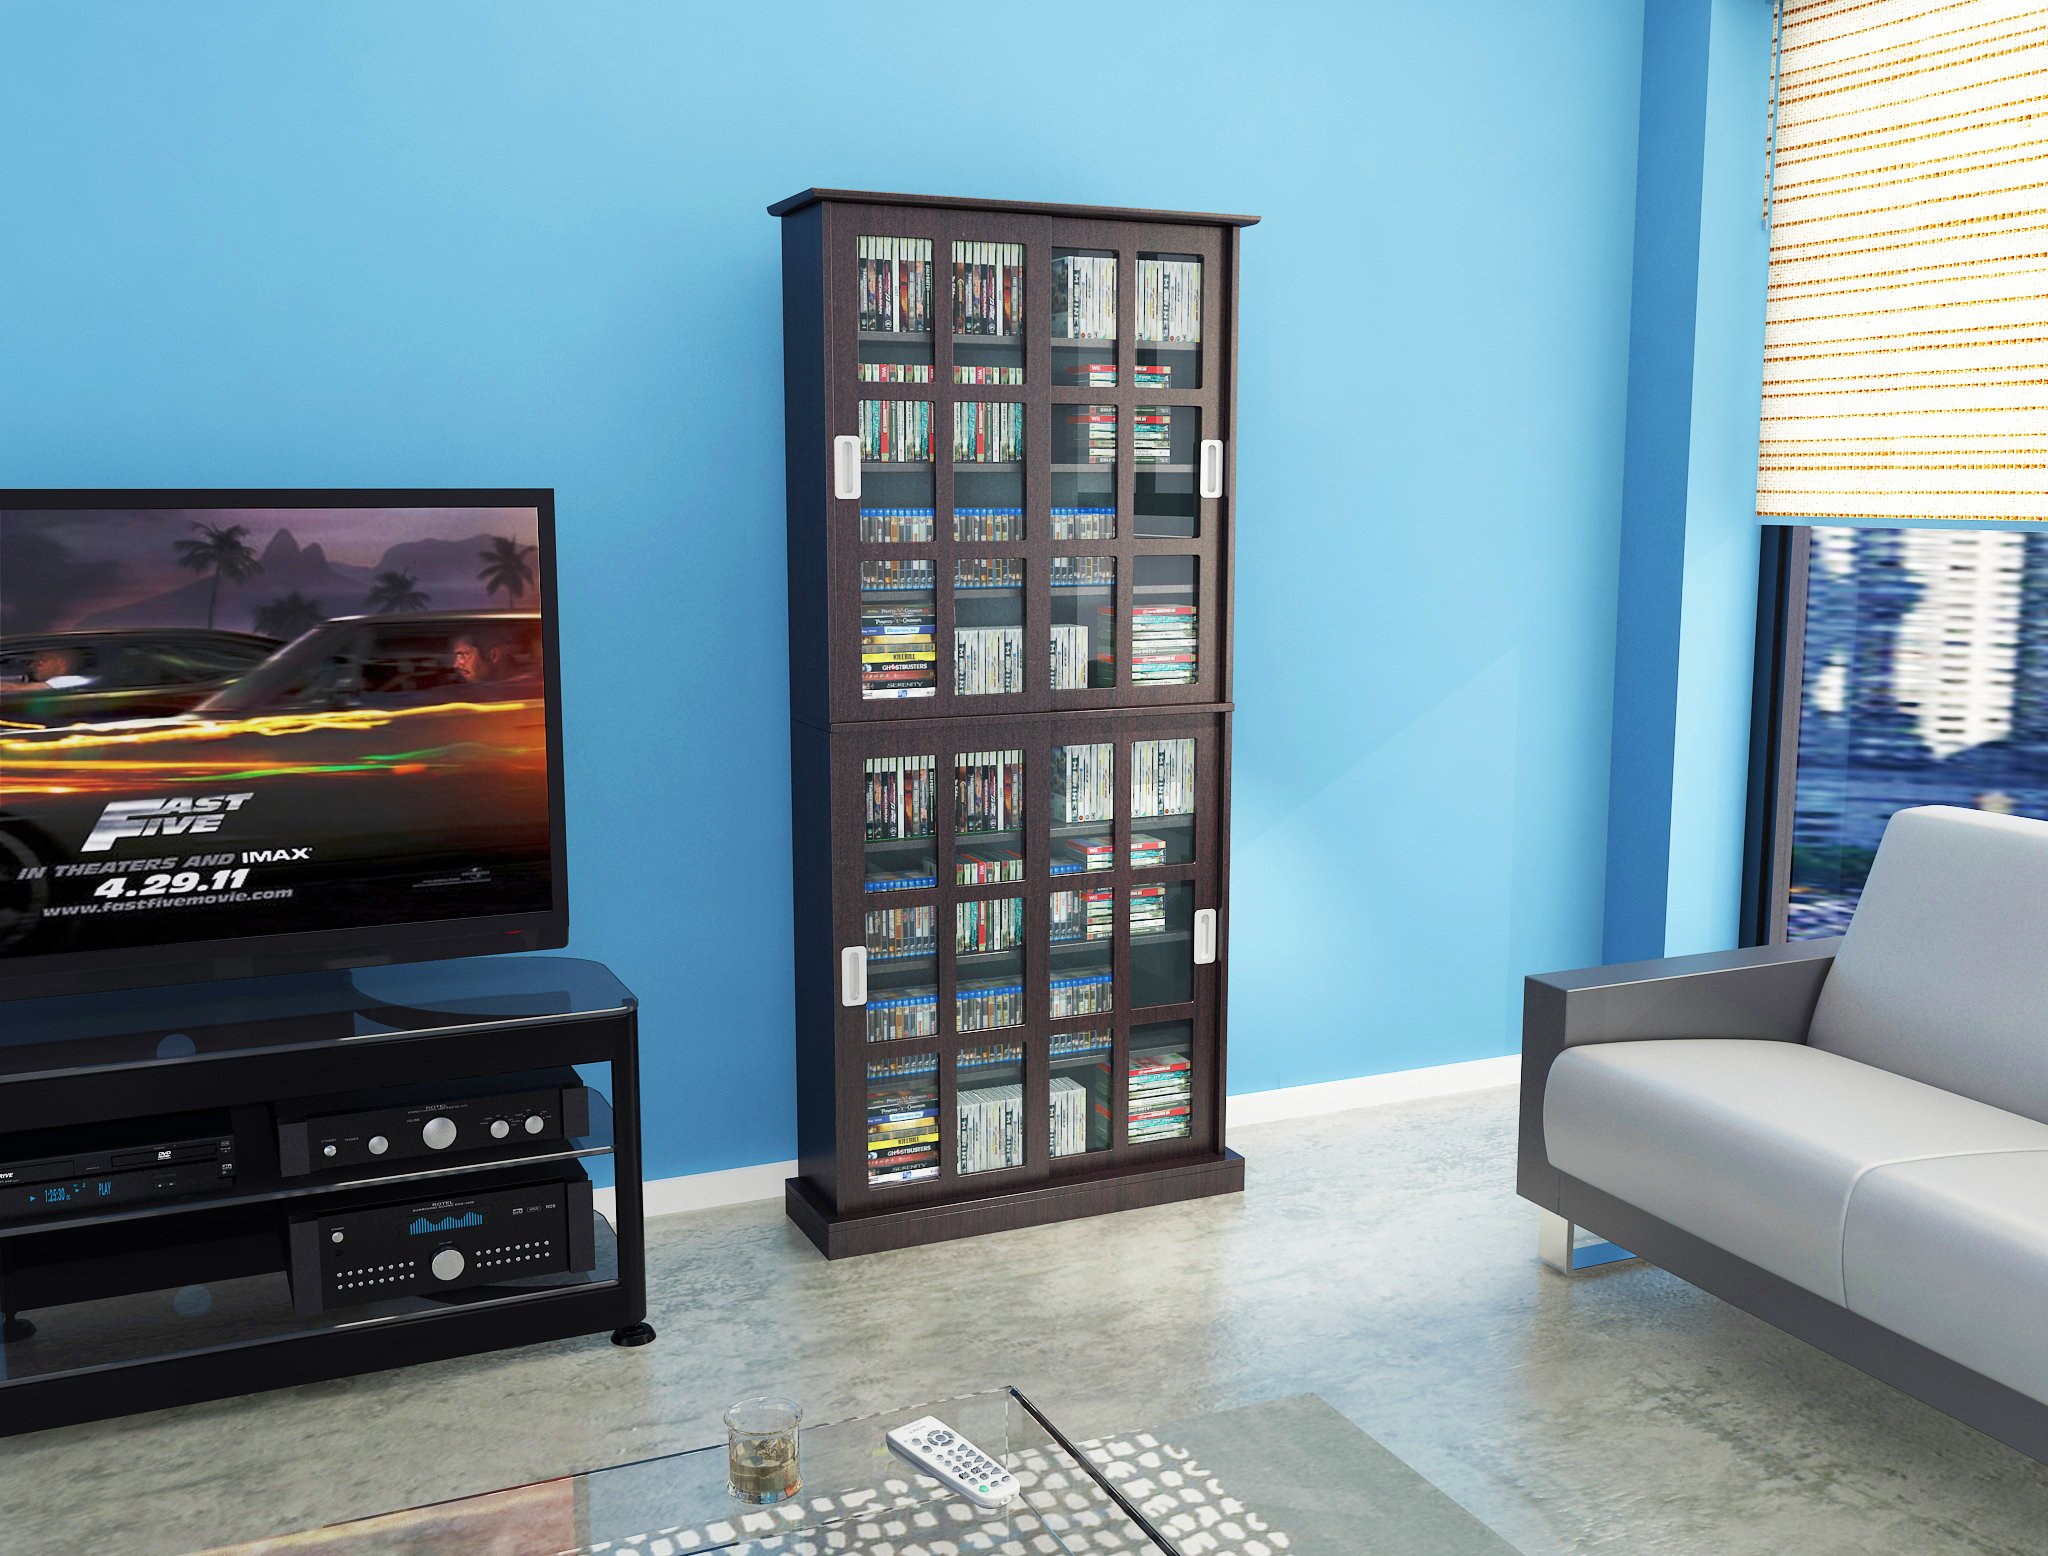 Atlantic 94835757 Windowpane 720 Media Cabinet in Espresso